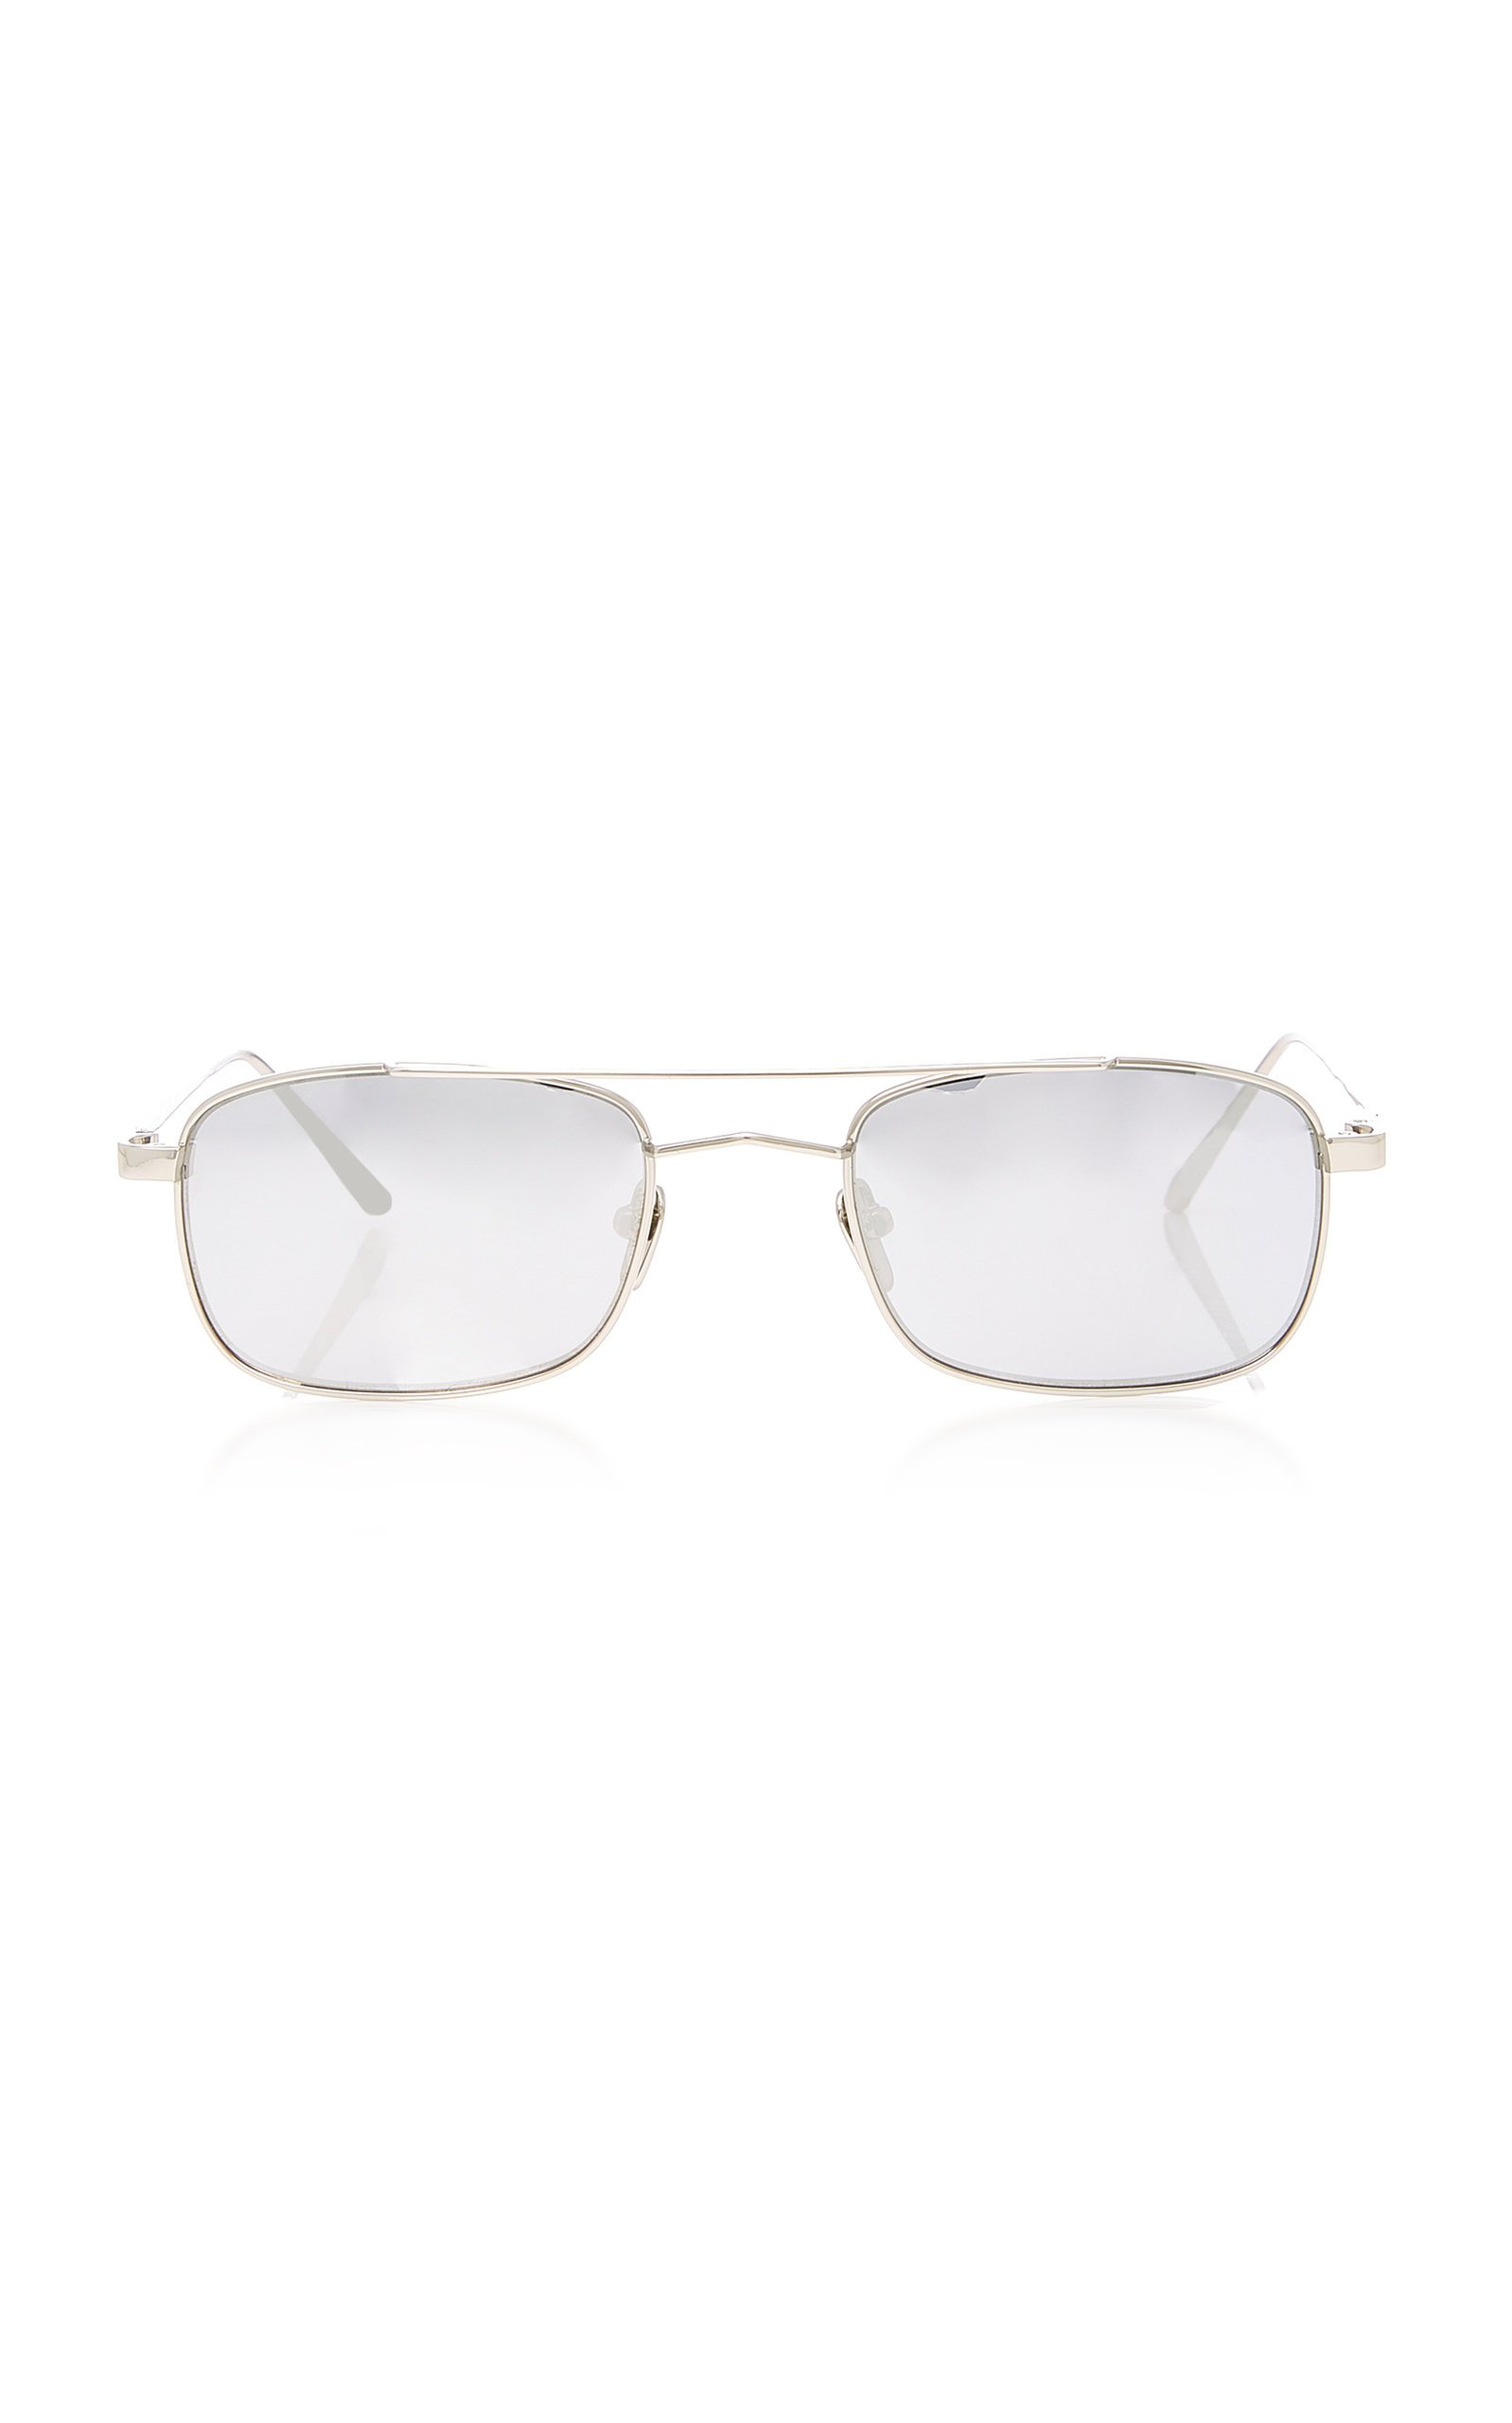 Linda Farrow White Gold Titanium Aviator Sunglasses